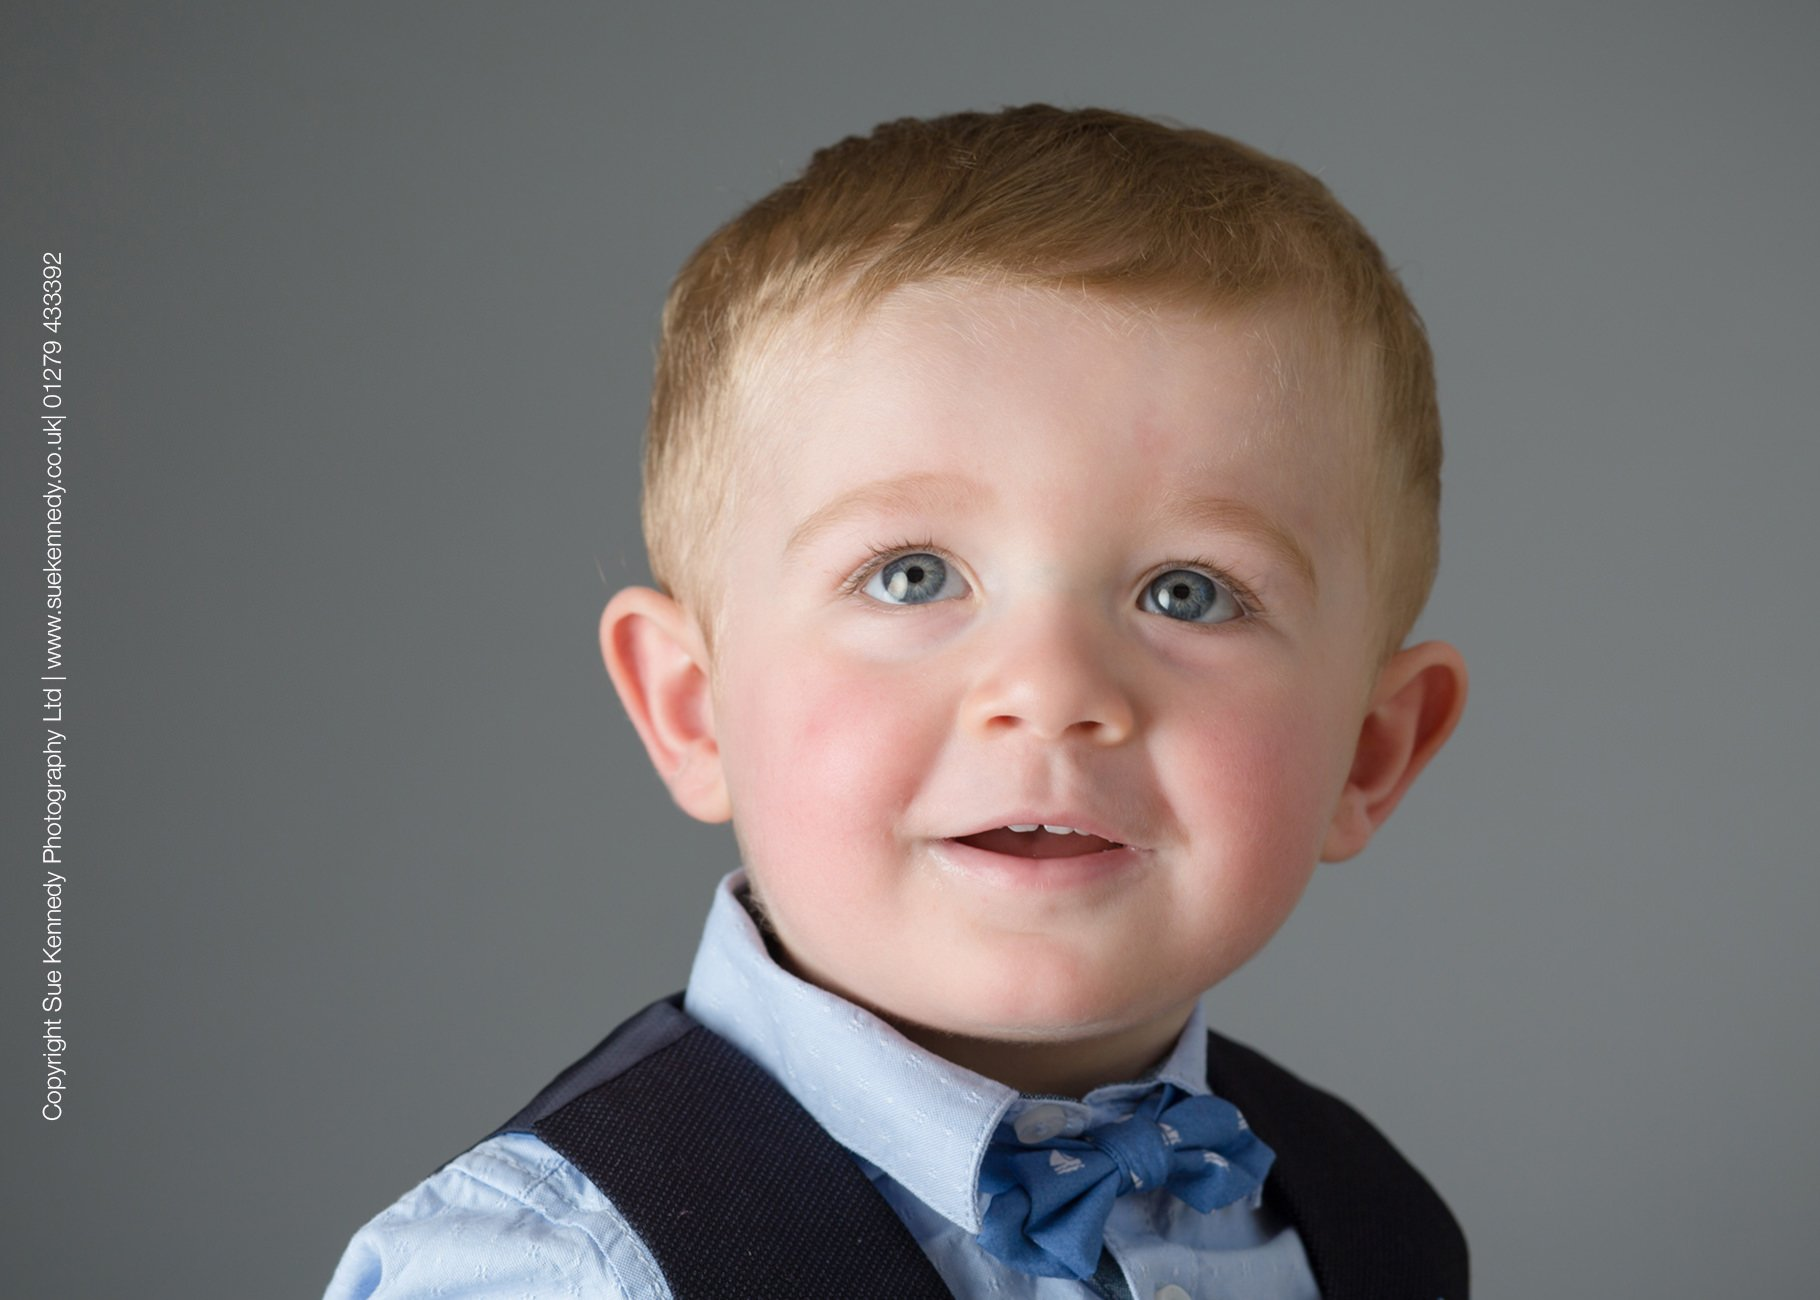 Professional Child Portrait Photograph by Sue Kennedy Photography ltd - 01279 433392